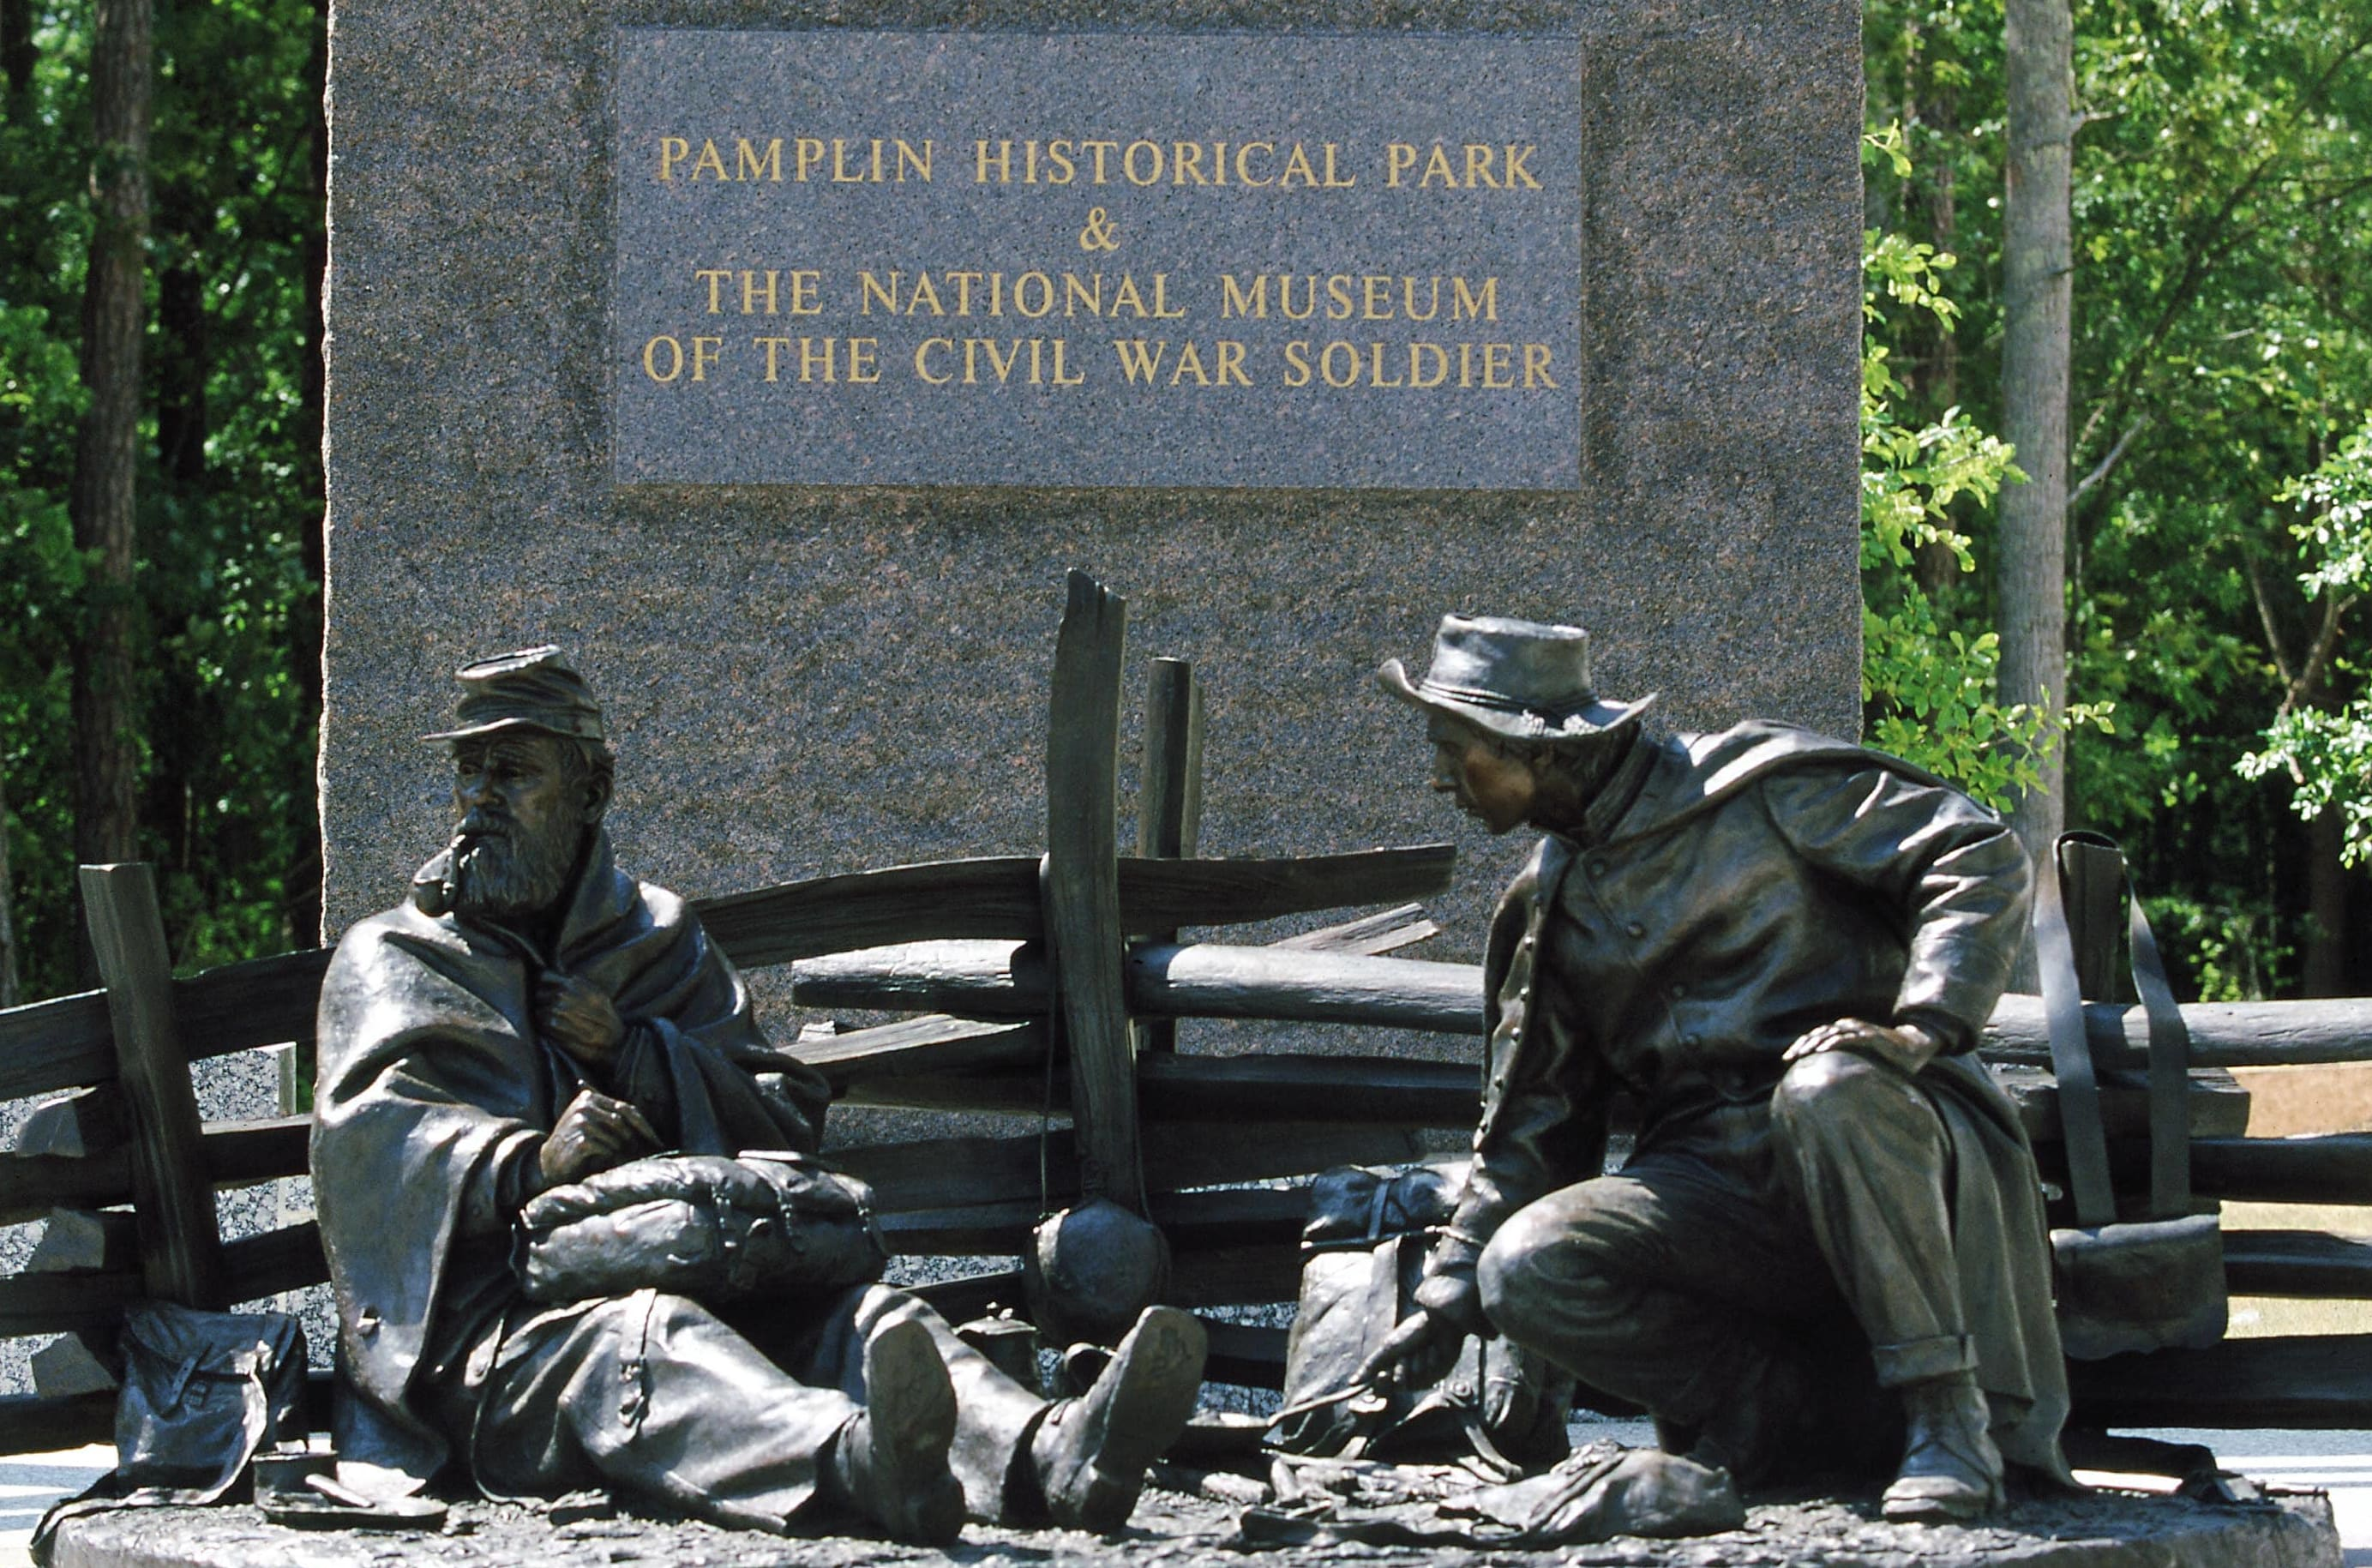 Pamplin-Park-statues-at-front-w3045-w2767.jpg